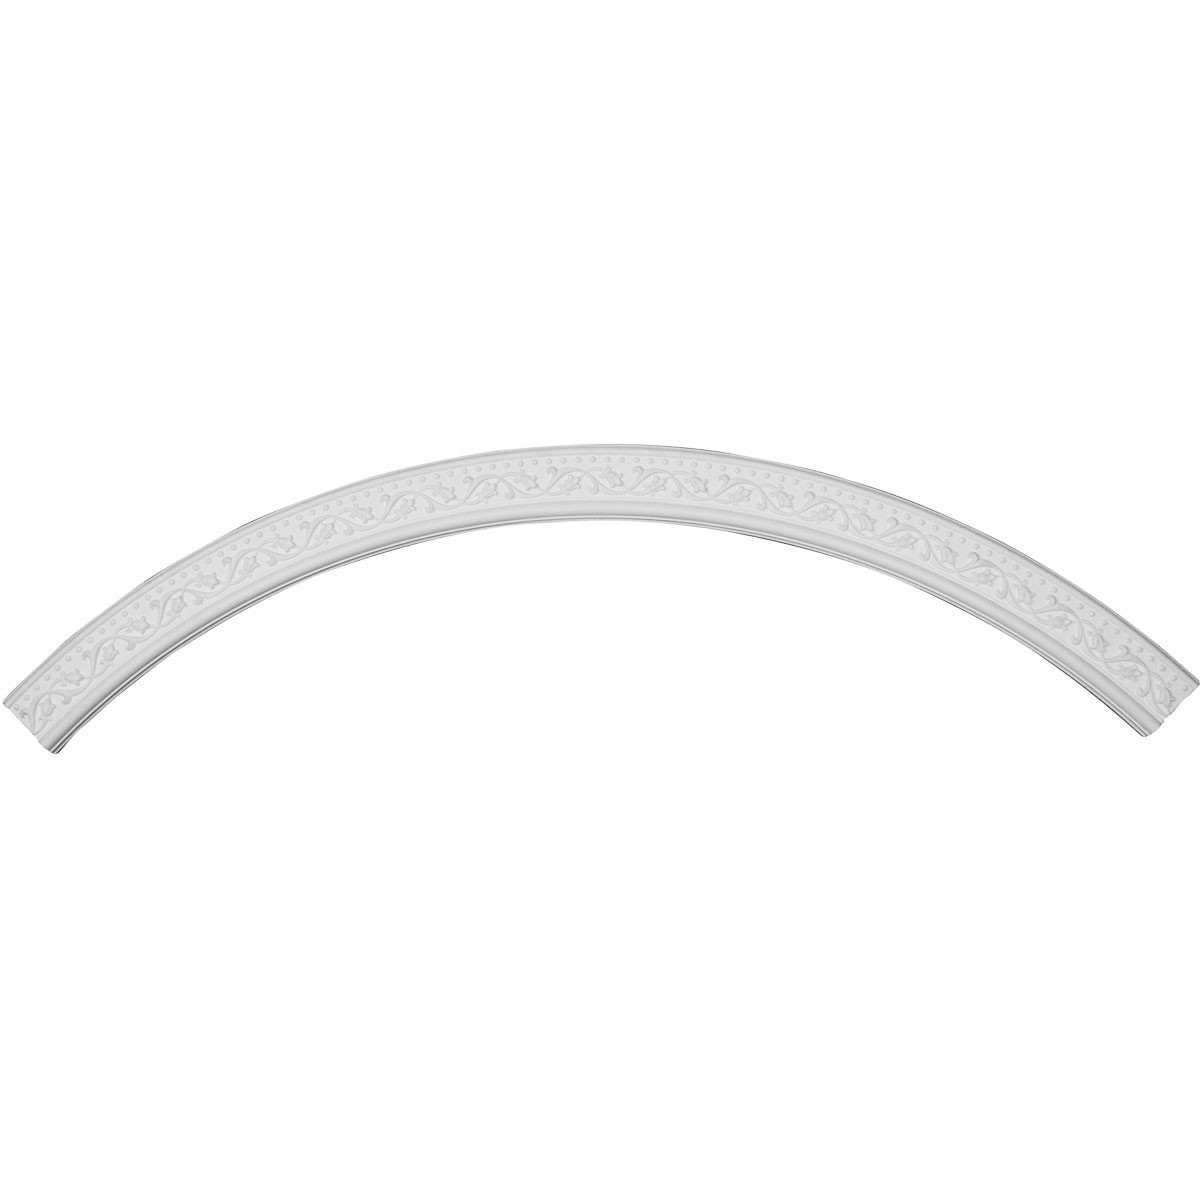 """EM-CR87MA - 86 5/8""""OD x 78 3/4""""ID x 4""""W x 7/8""""P Marcella Ceiling Ring (1/4 of complete circle)"""